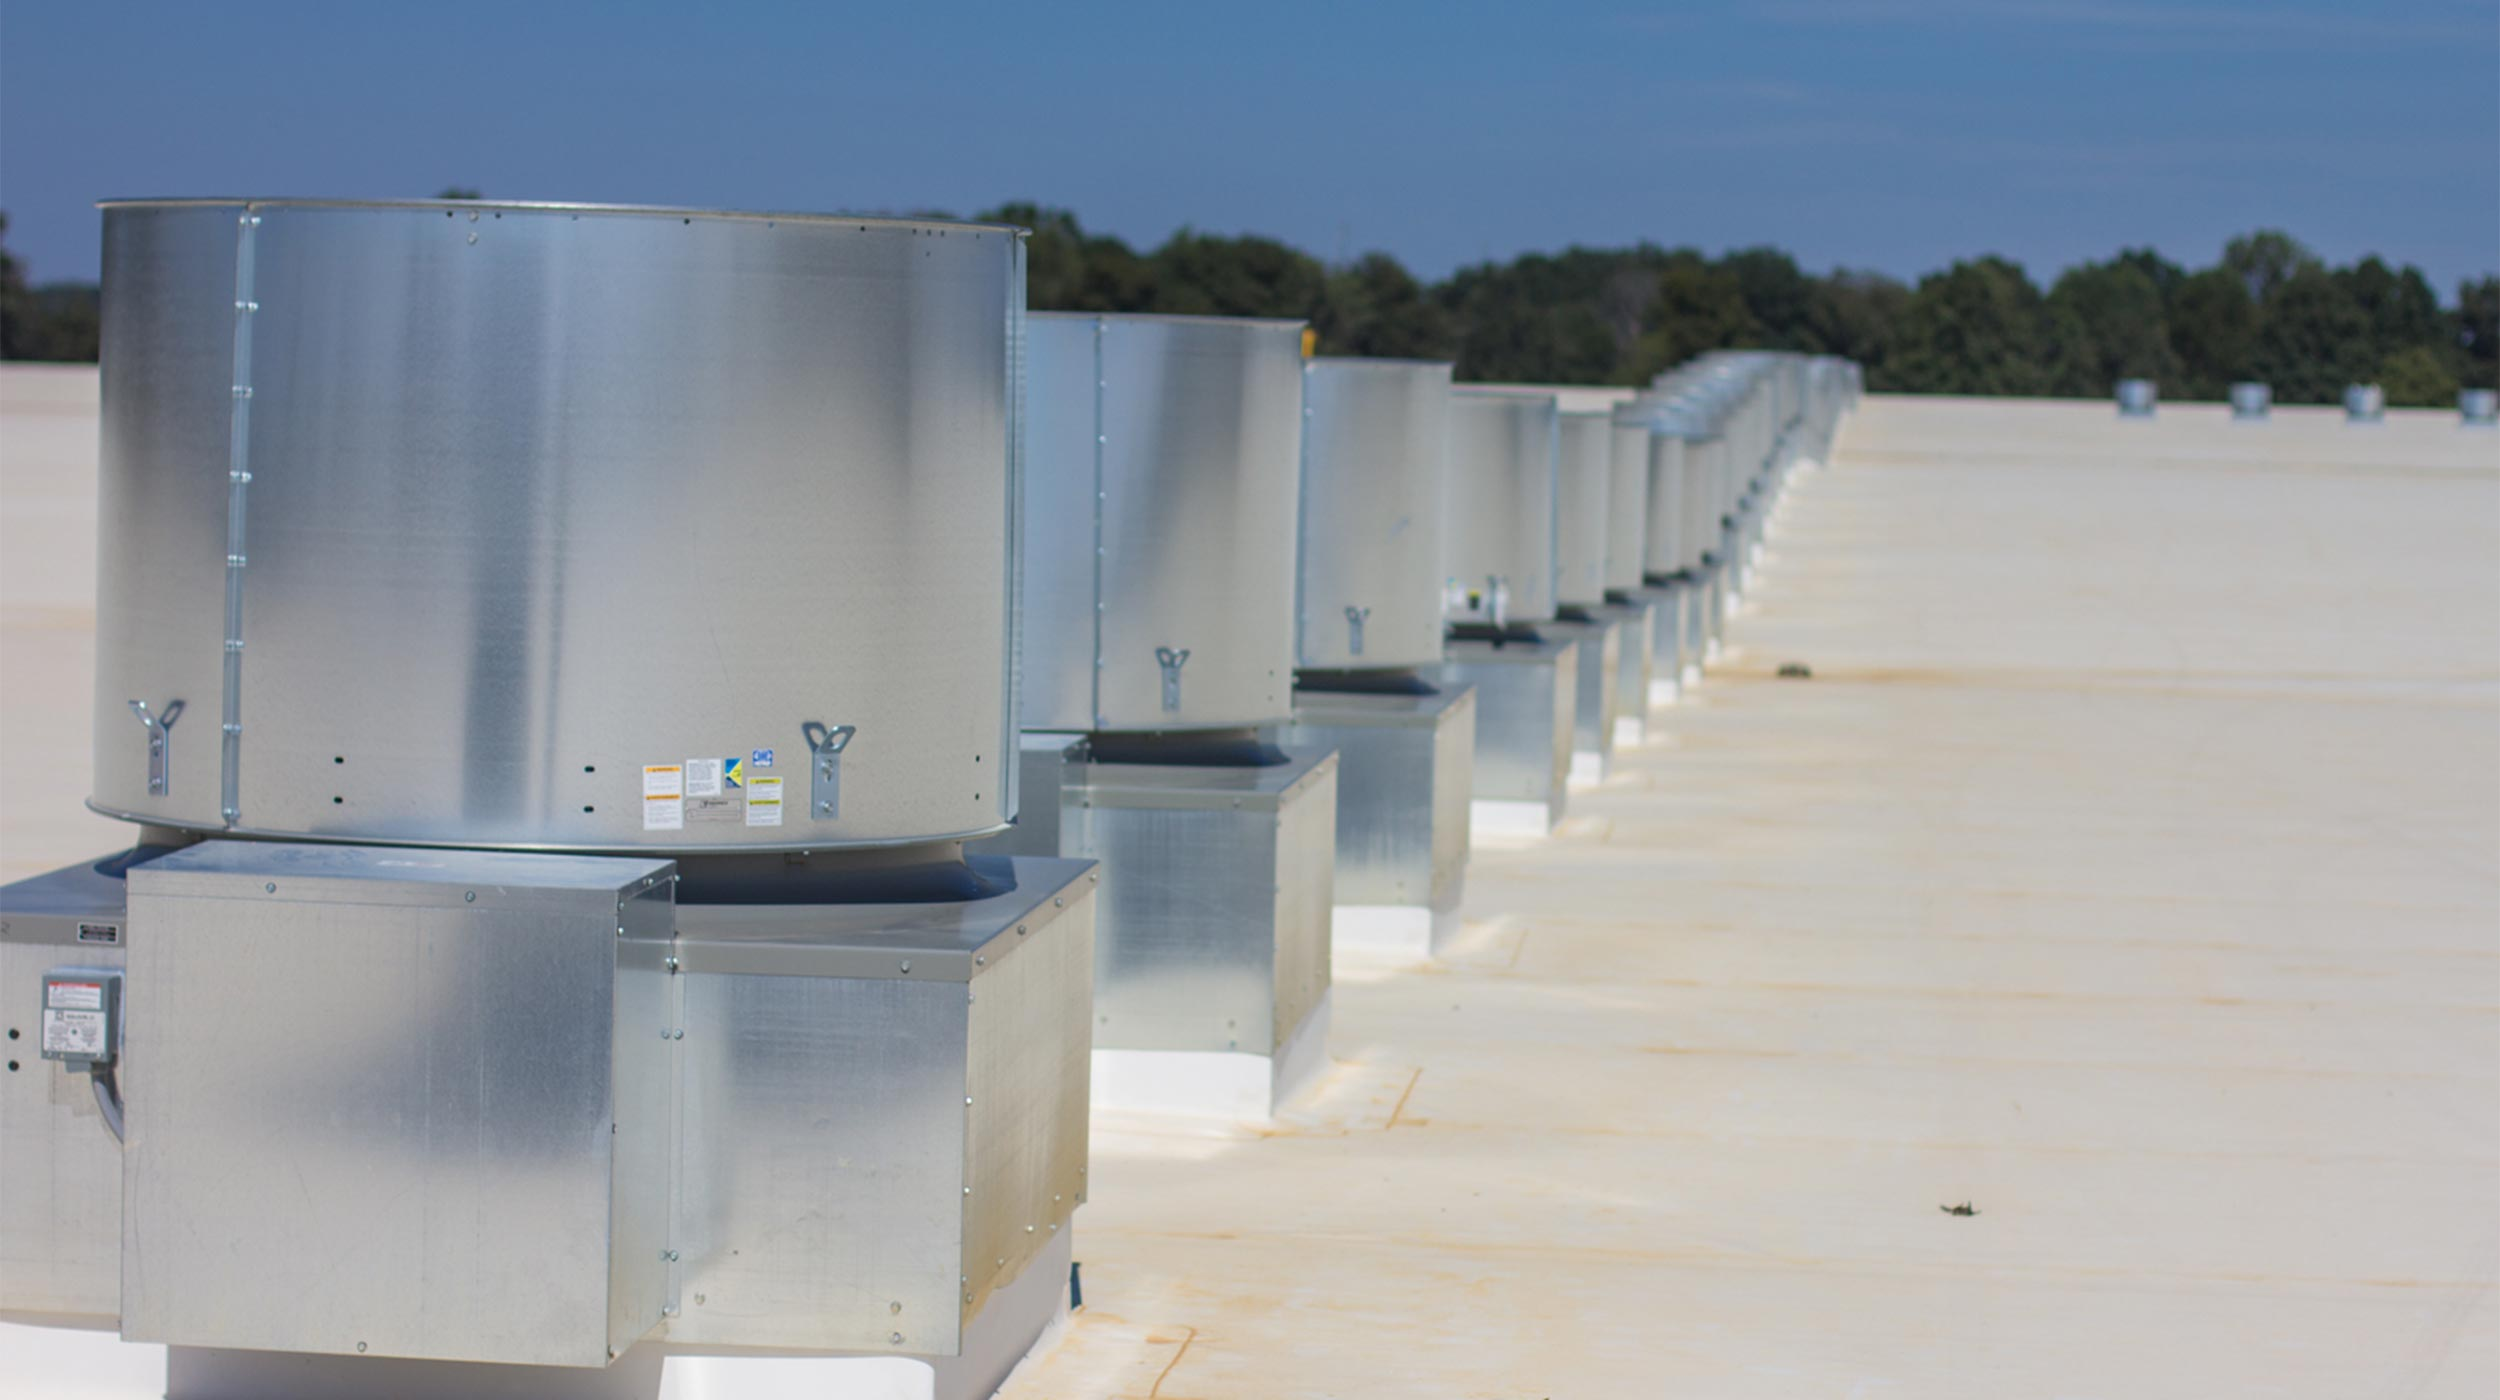 Rooftop units at Academy Sports